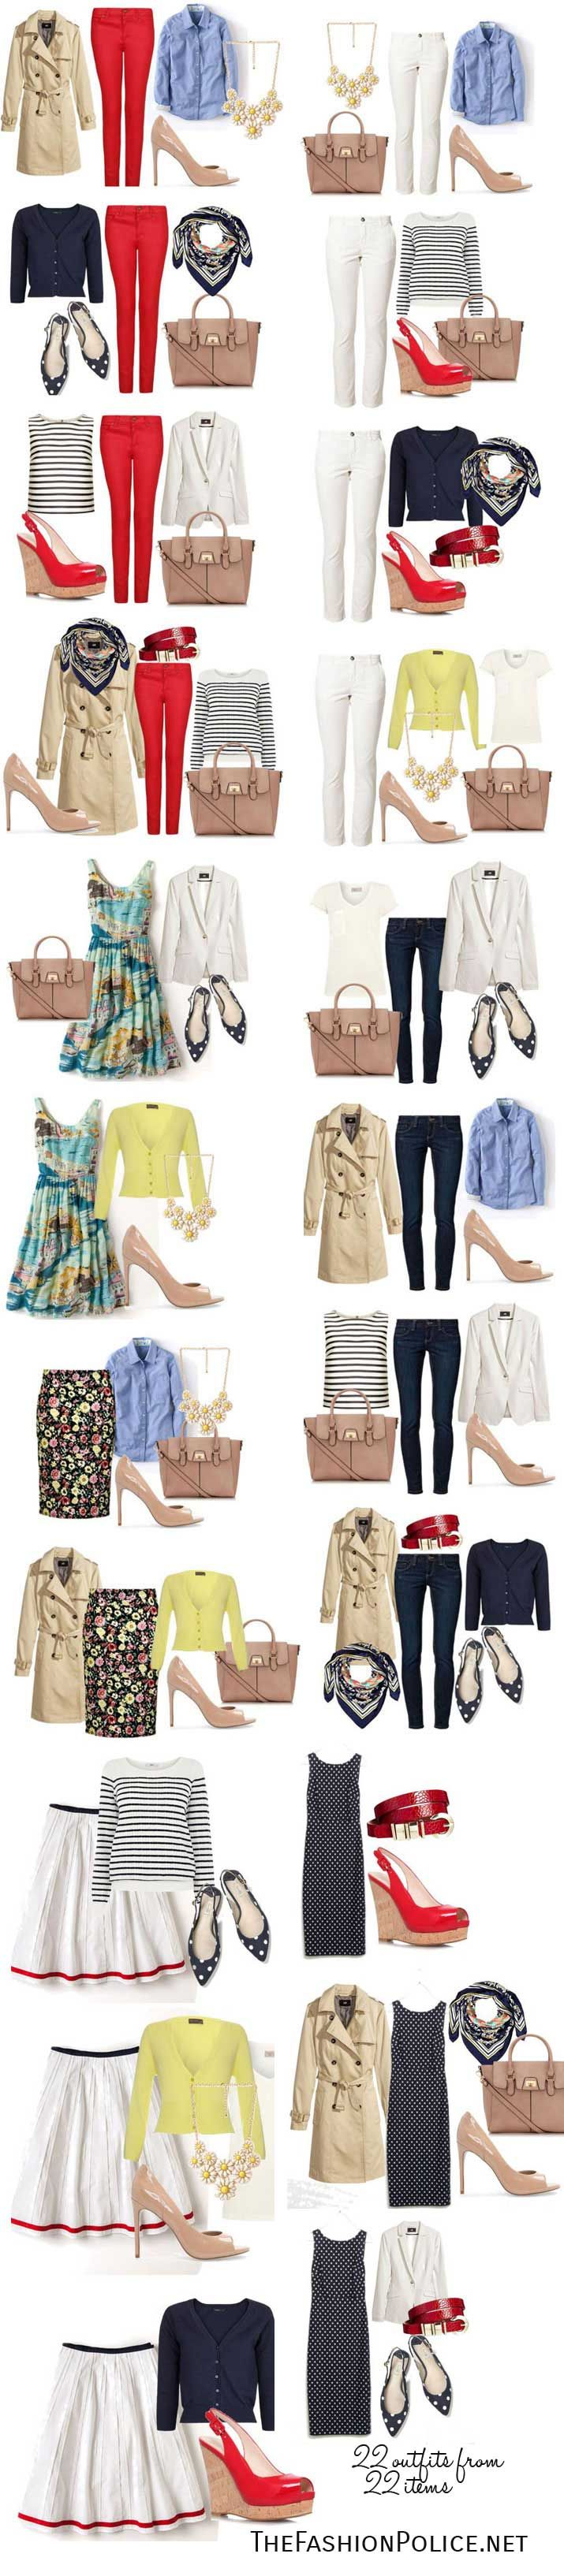 Spring Capsule Wardrobe 2014: It all works for me except that yellow sweater - I hate yellow. Green, teal or turquoise would be the replacement.